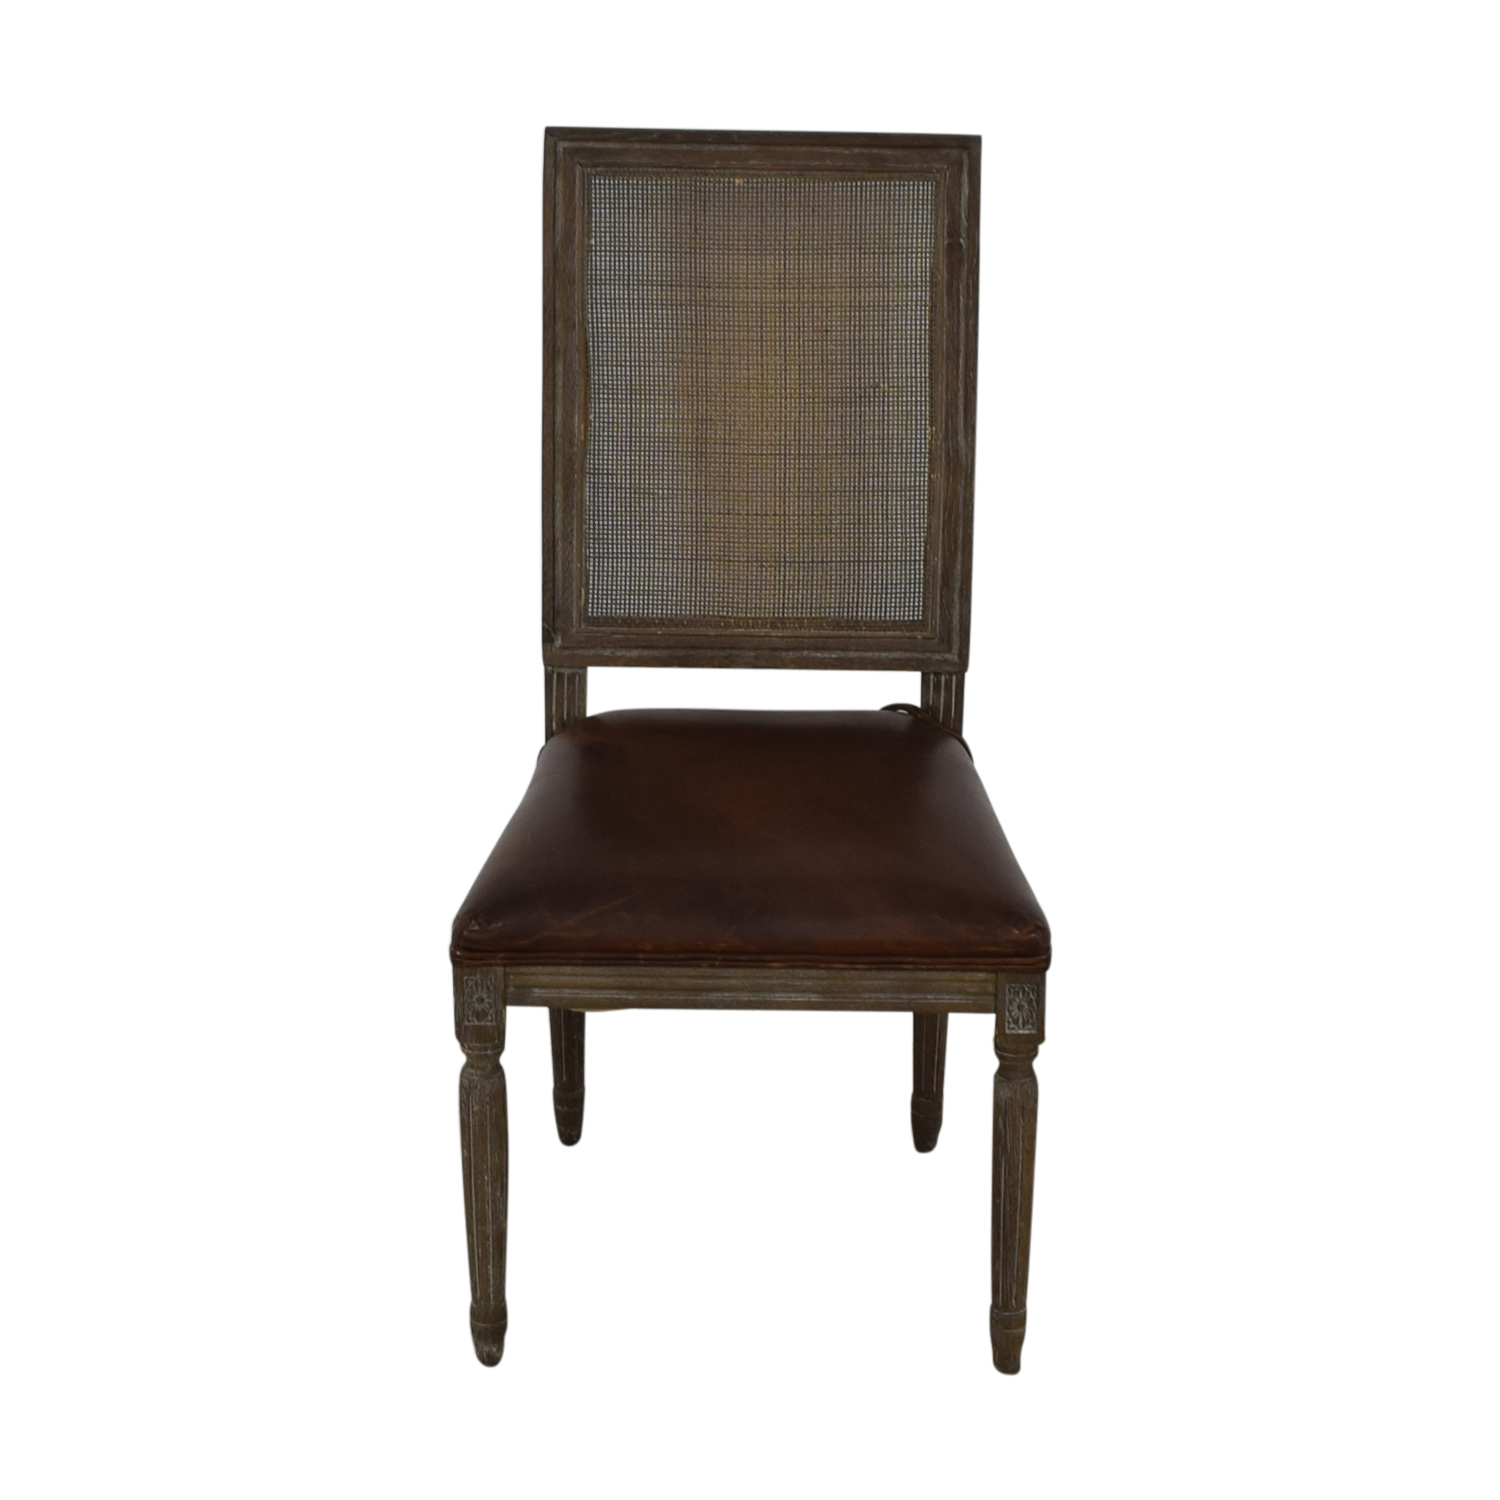 Restoration Hardware Restoration Hardware Vintage French Square Cane Back Leather Side Chair used